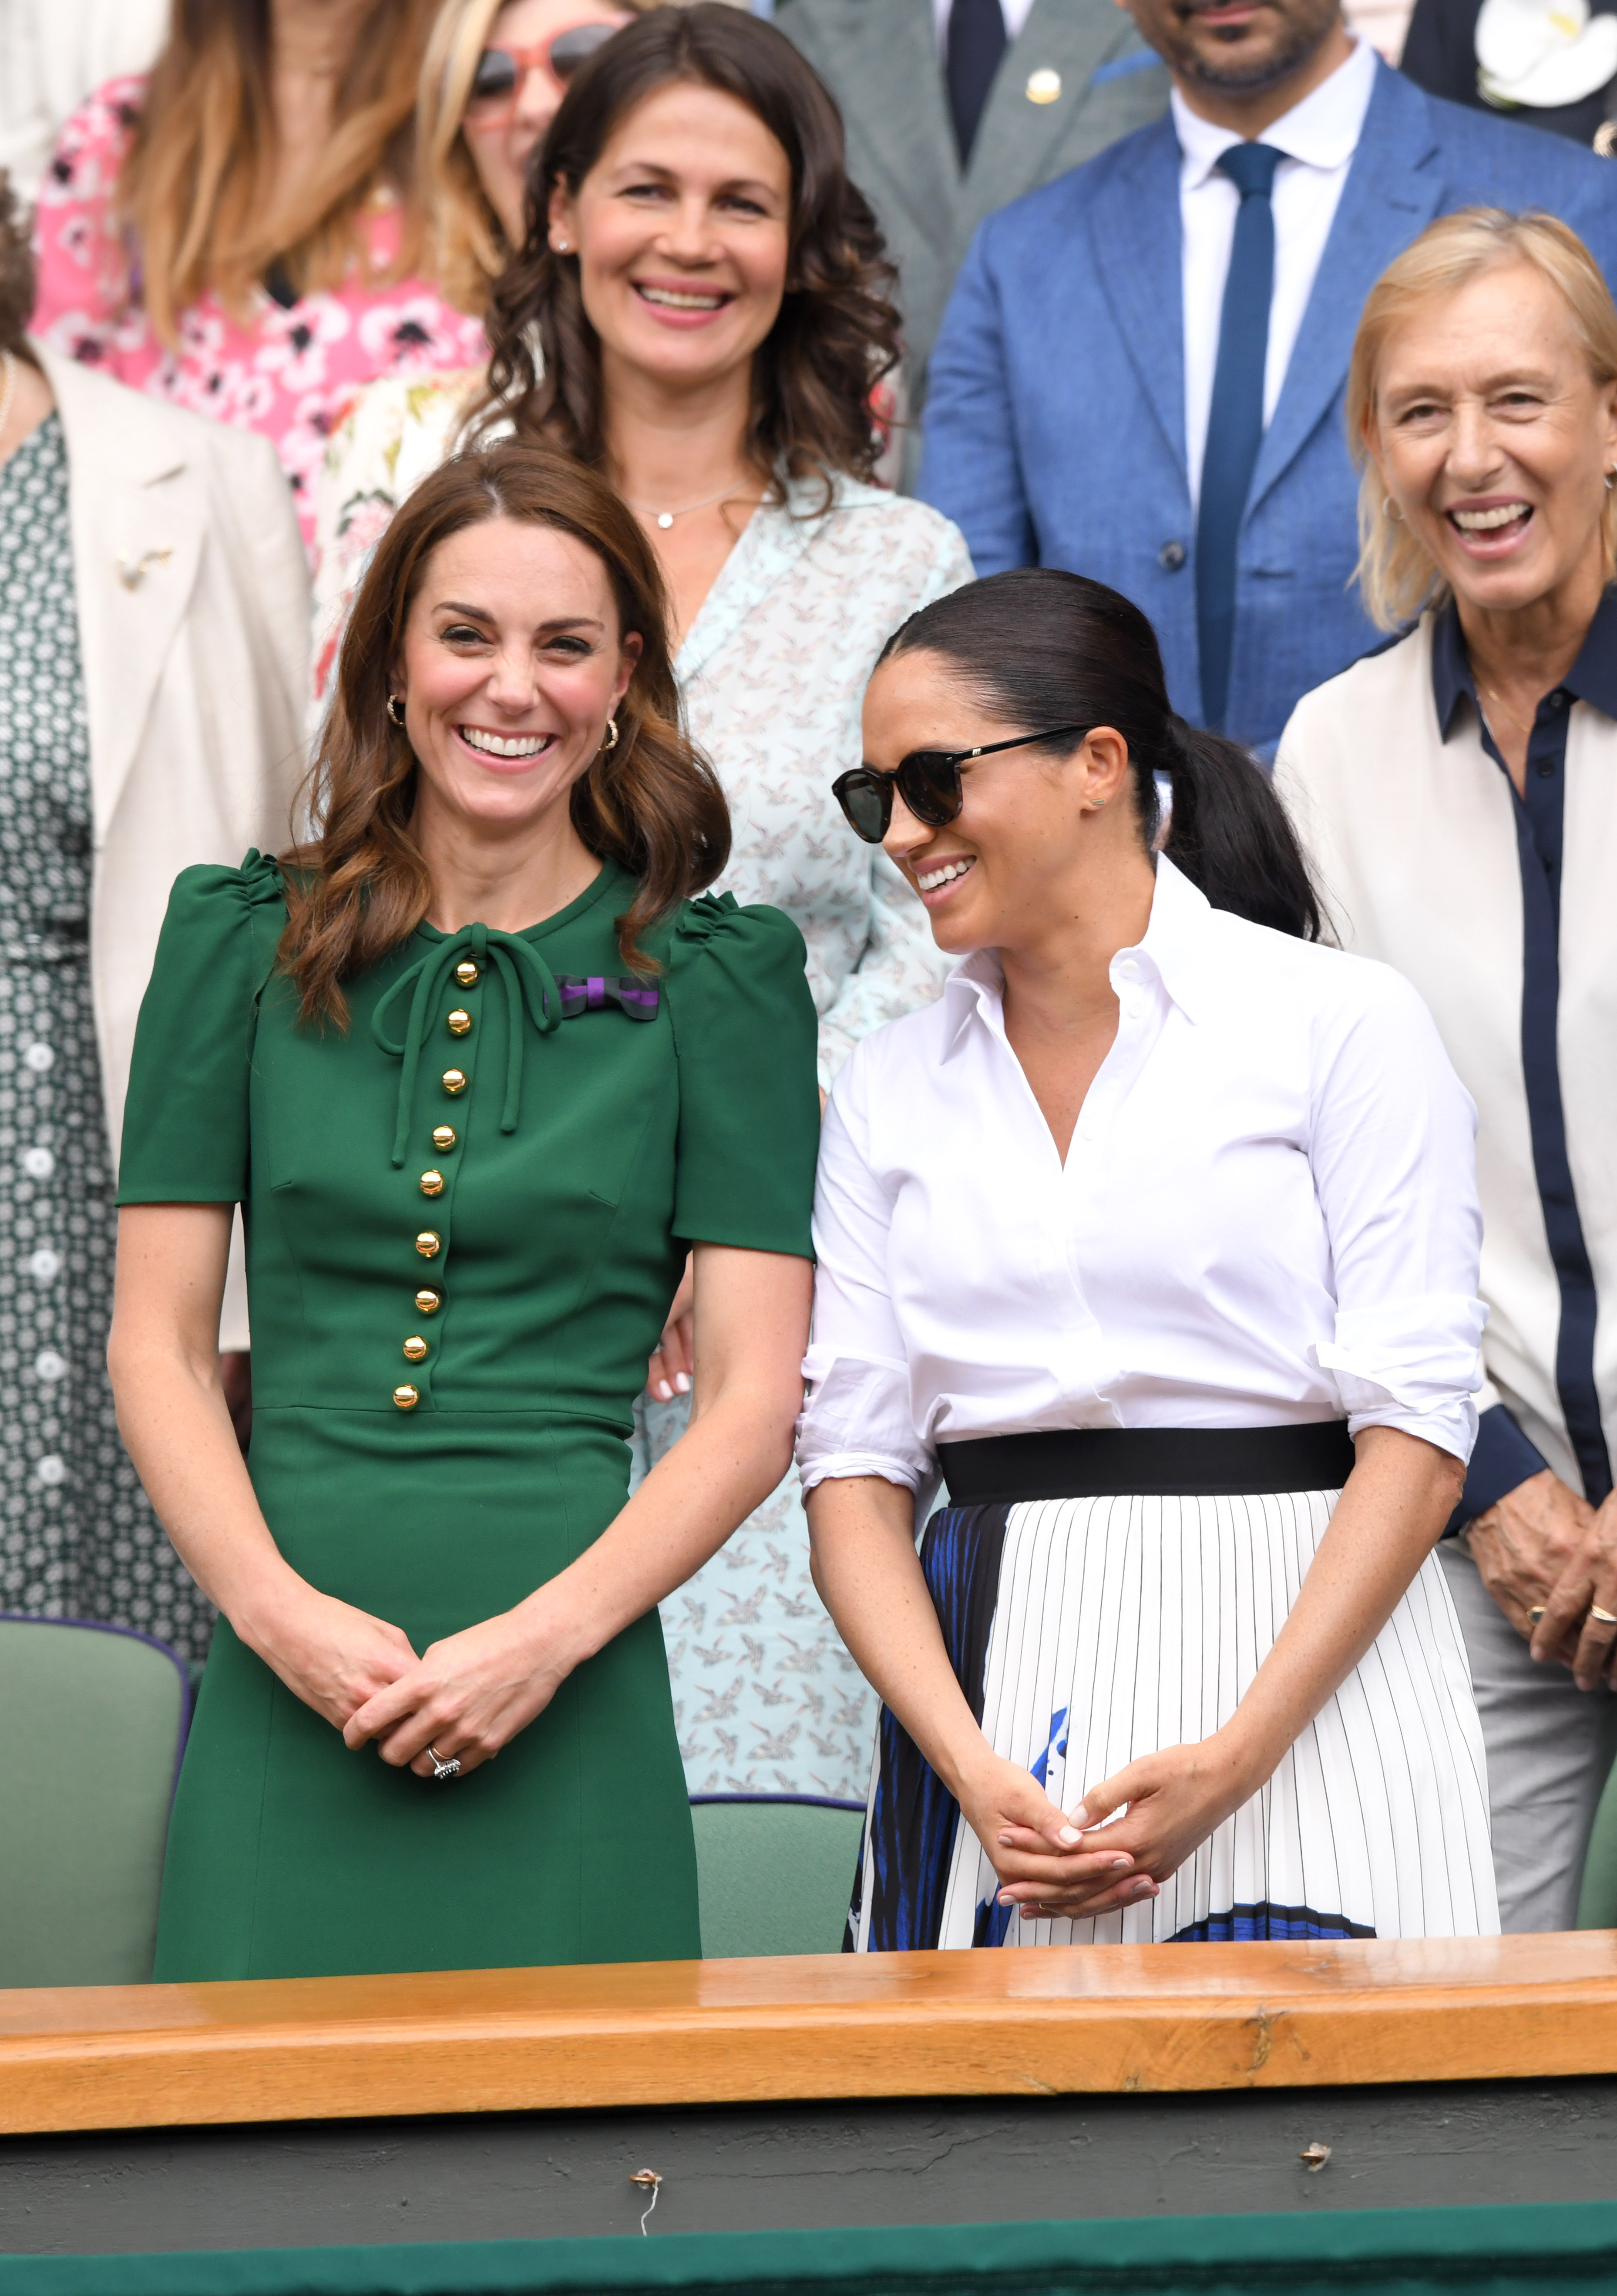 How Meghan Markle and Kate Middleton's Relationship Is Evolving Past the Royal Feud